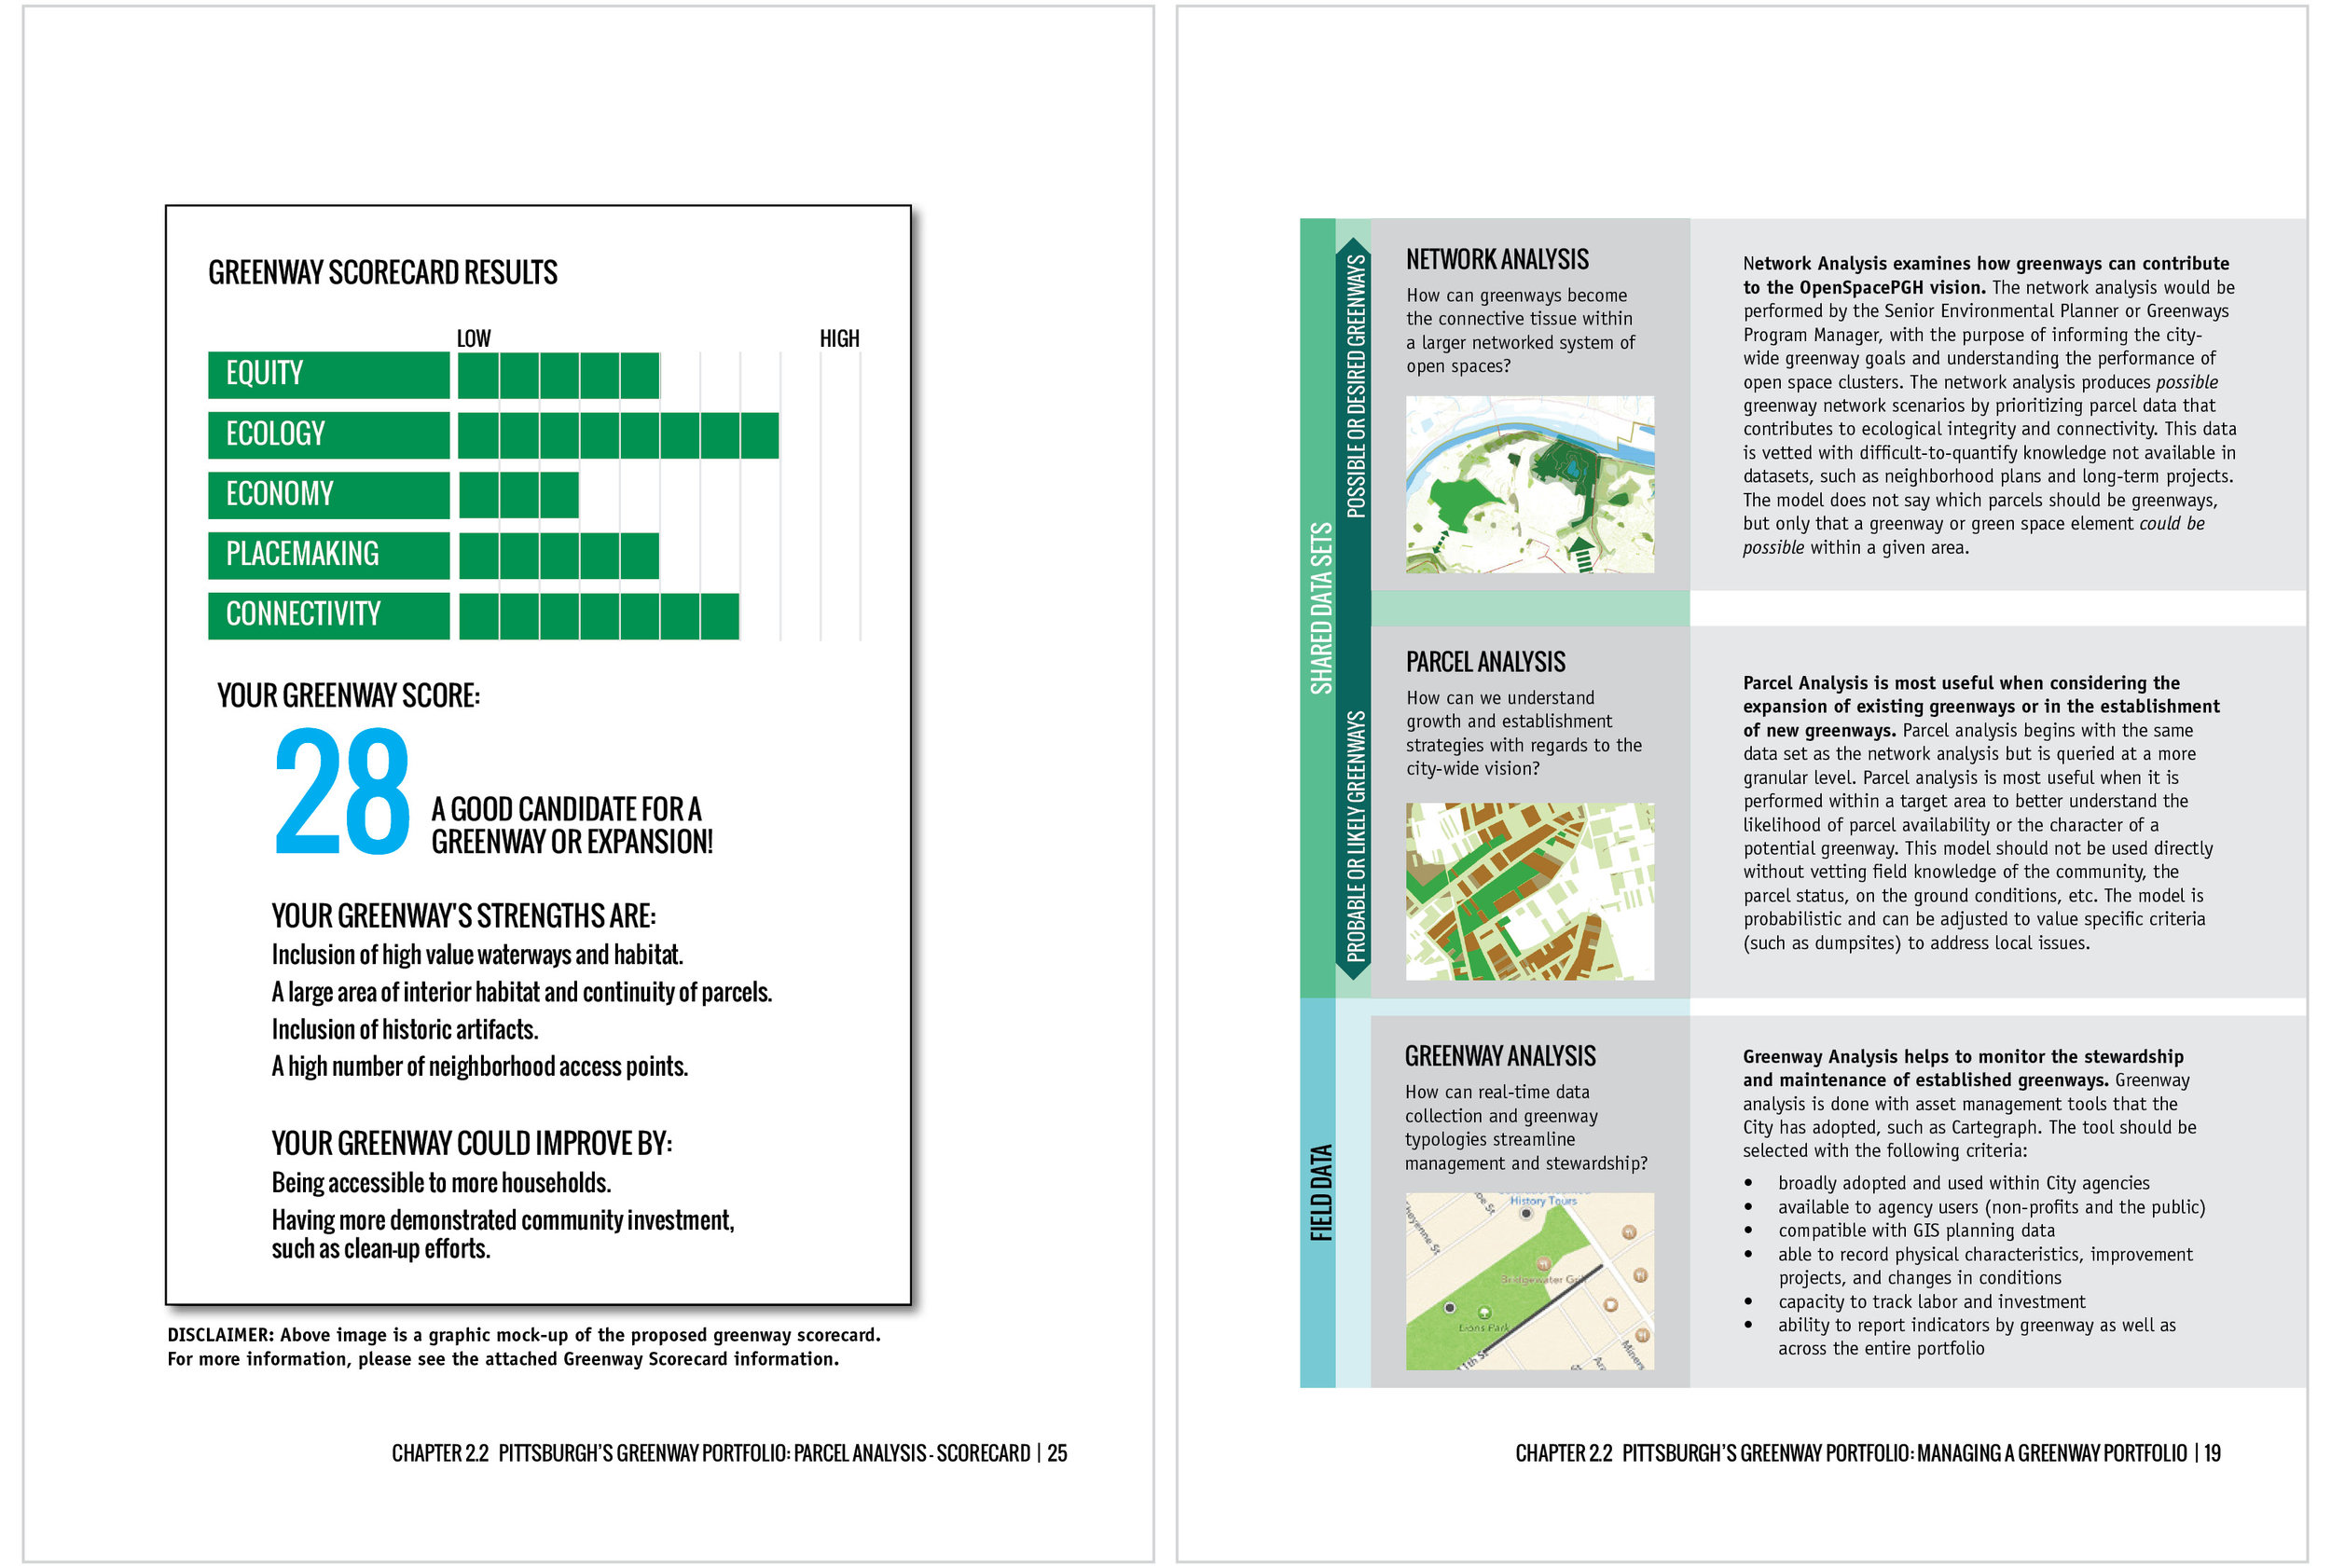 GREENWAYS ANALYSIS & SCORECARD IN POLICY GUIDE